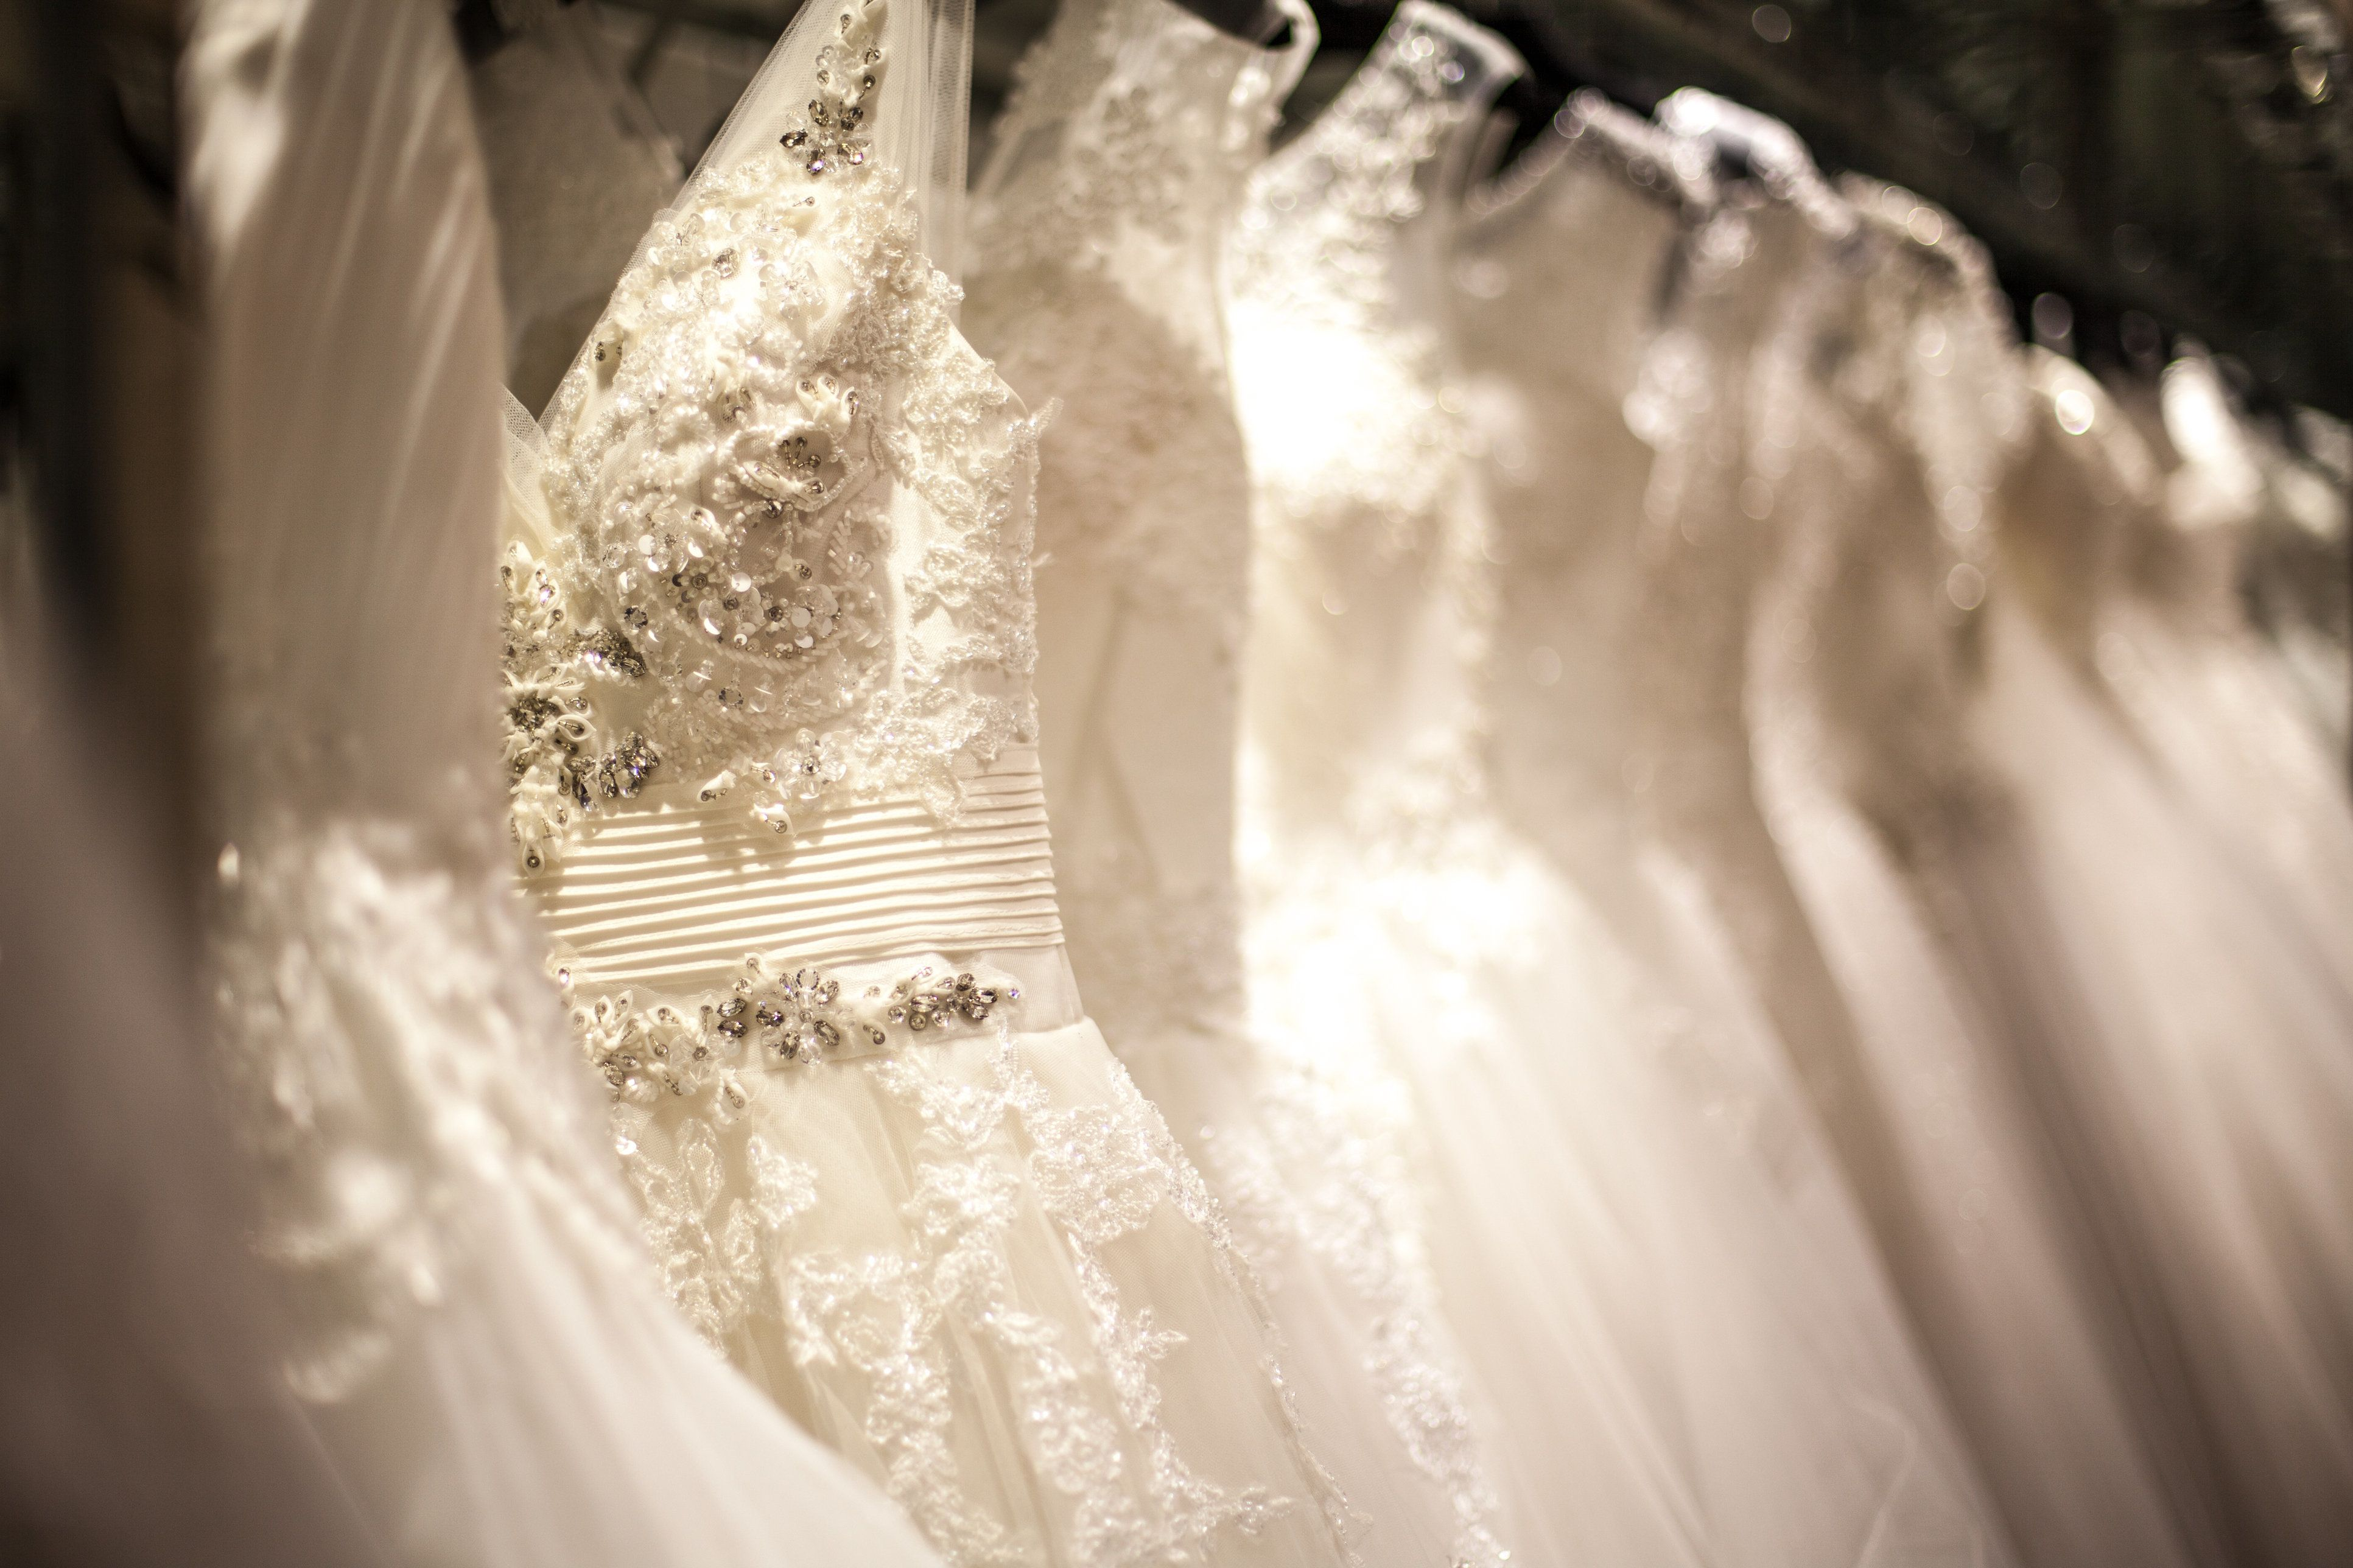 Brides-To-Be Panic As Dressmaker Files For Bankruptcy - Until Other Women Come To Their